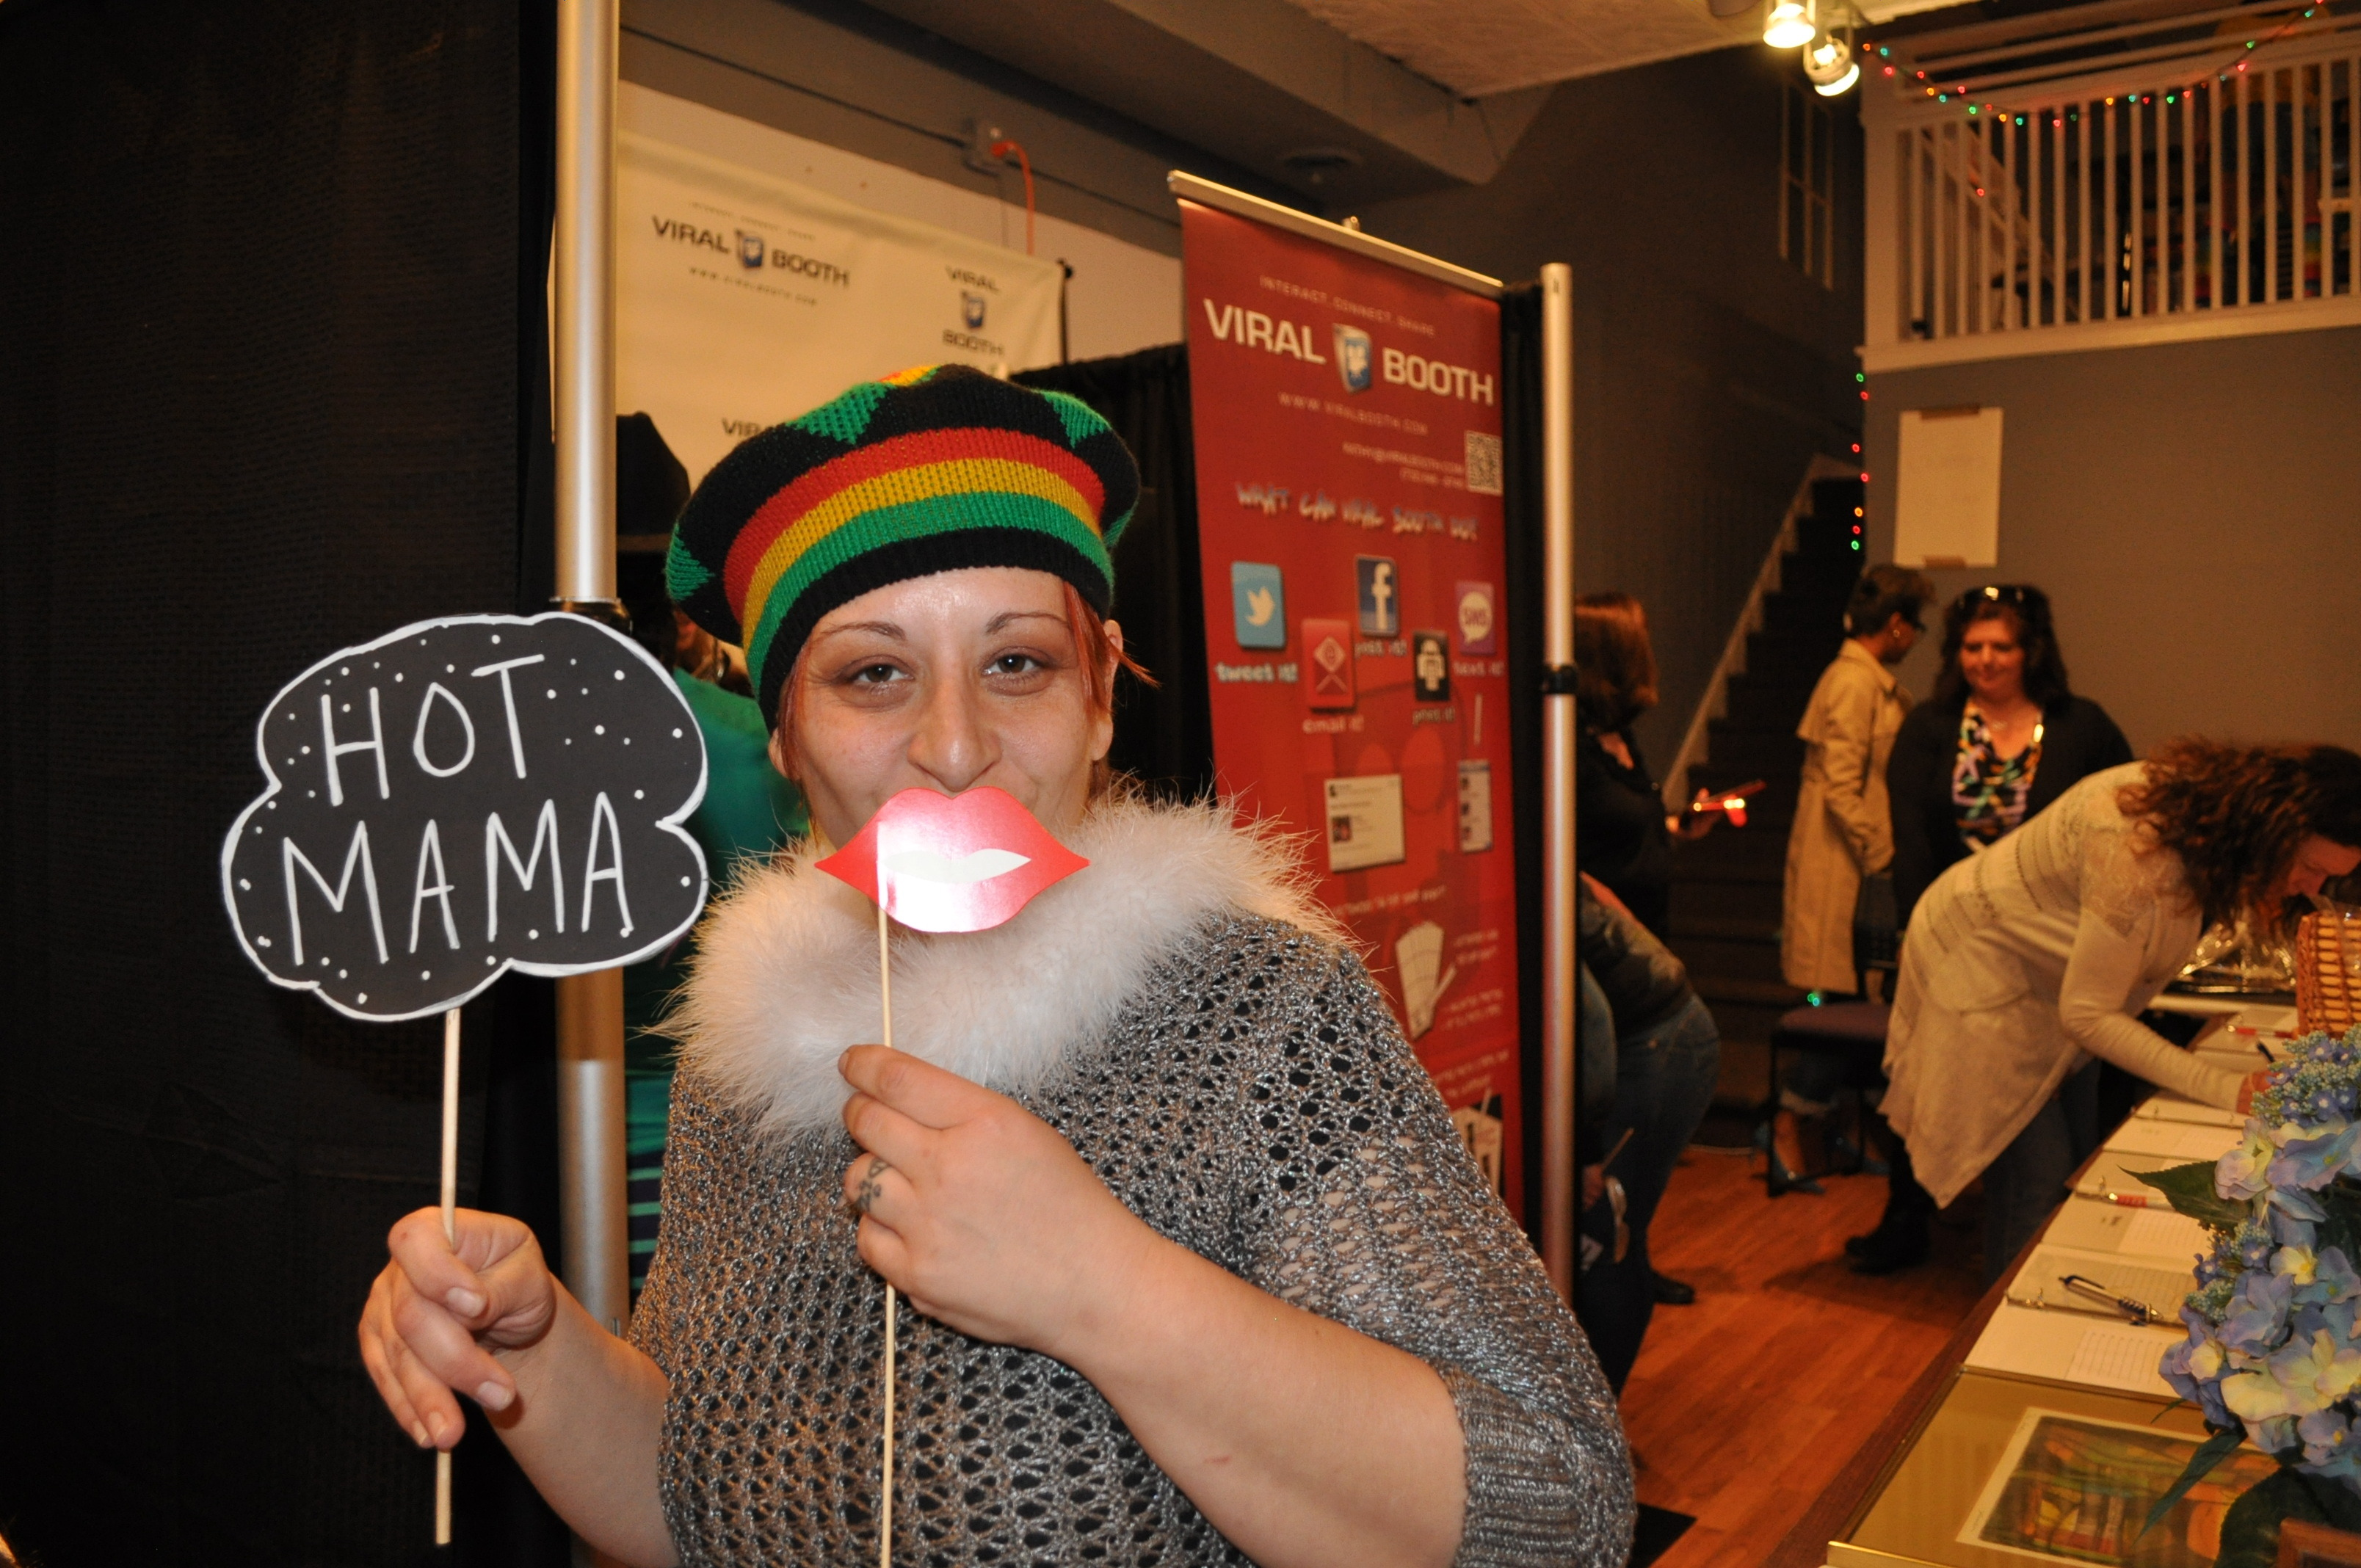 jay s cycle center in westfield hosts fundraiser for furniture lisa natale owner of michele s on prospect takes a break from serving food to enter the viral photo booth credits jackie lieberman